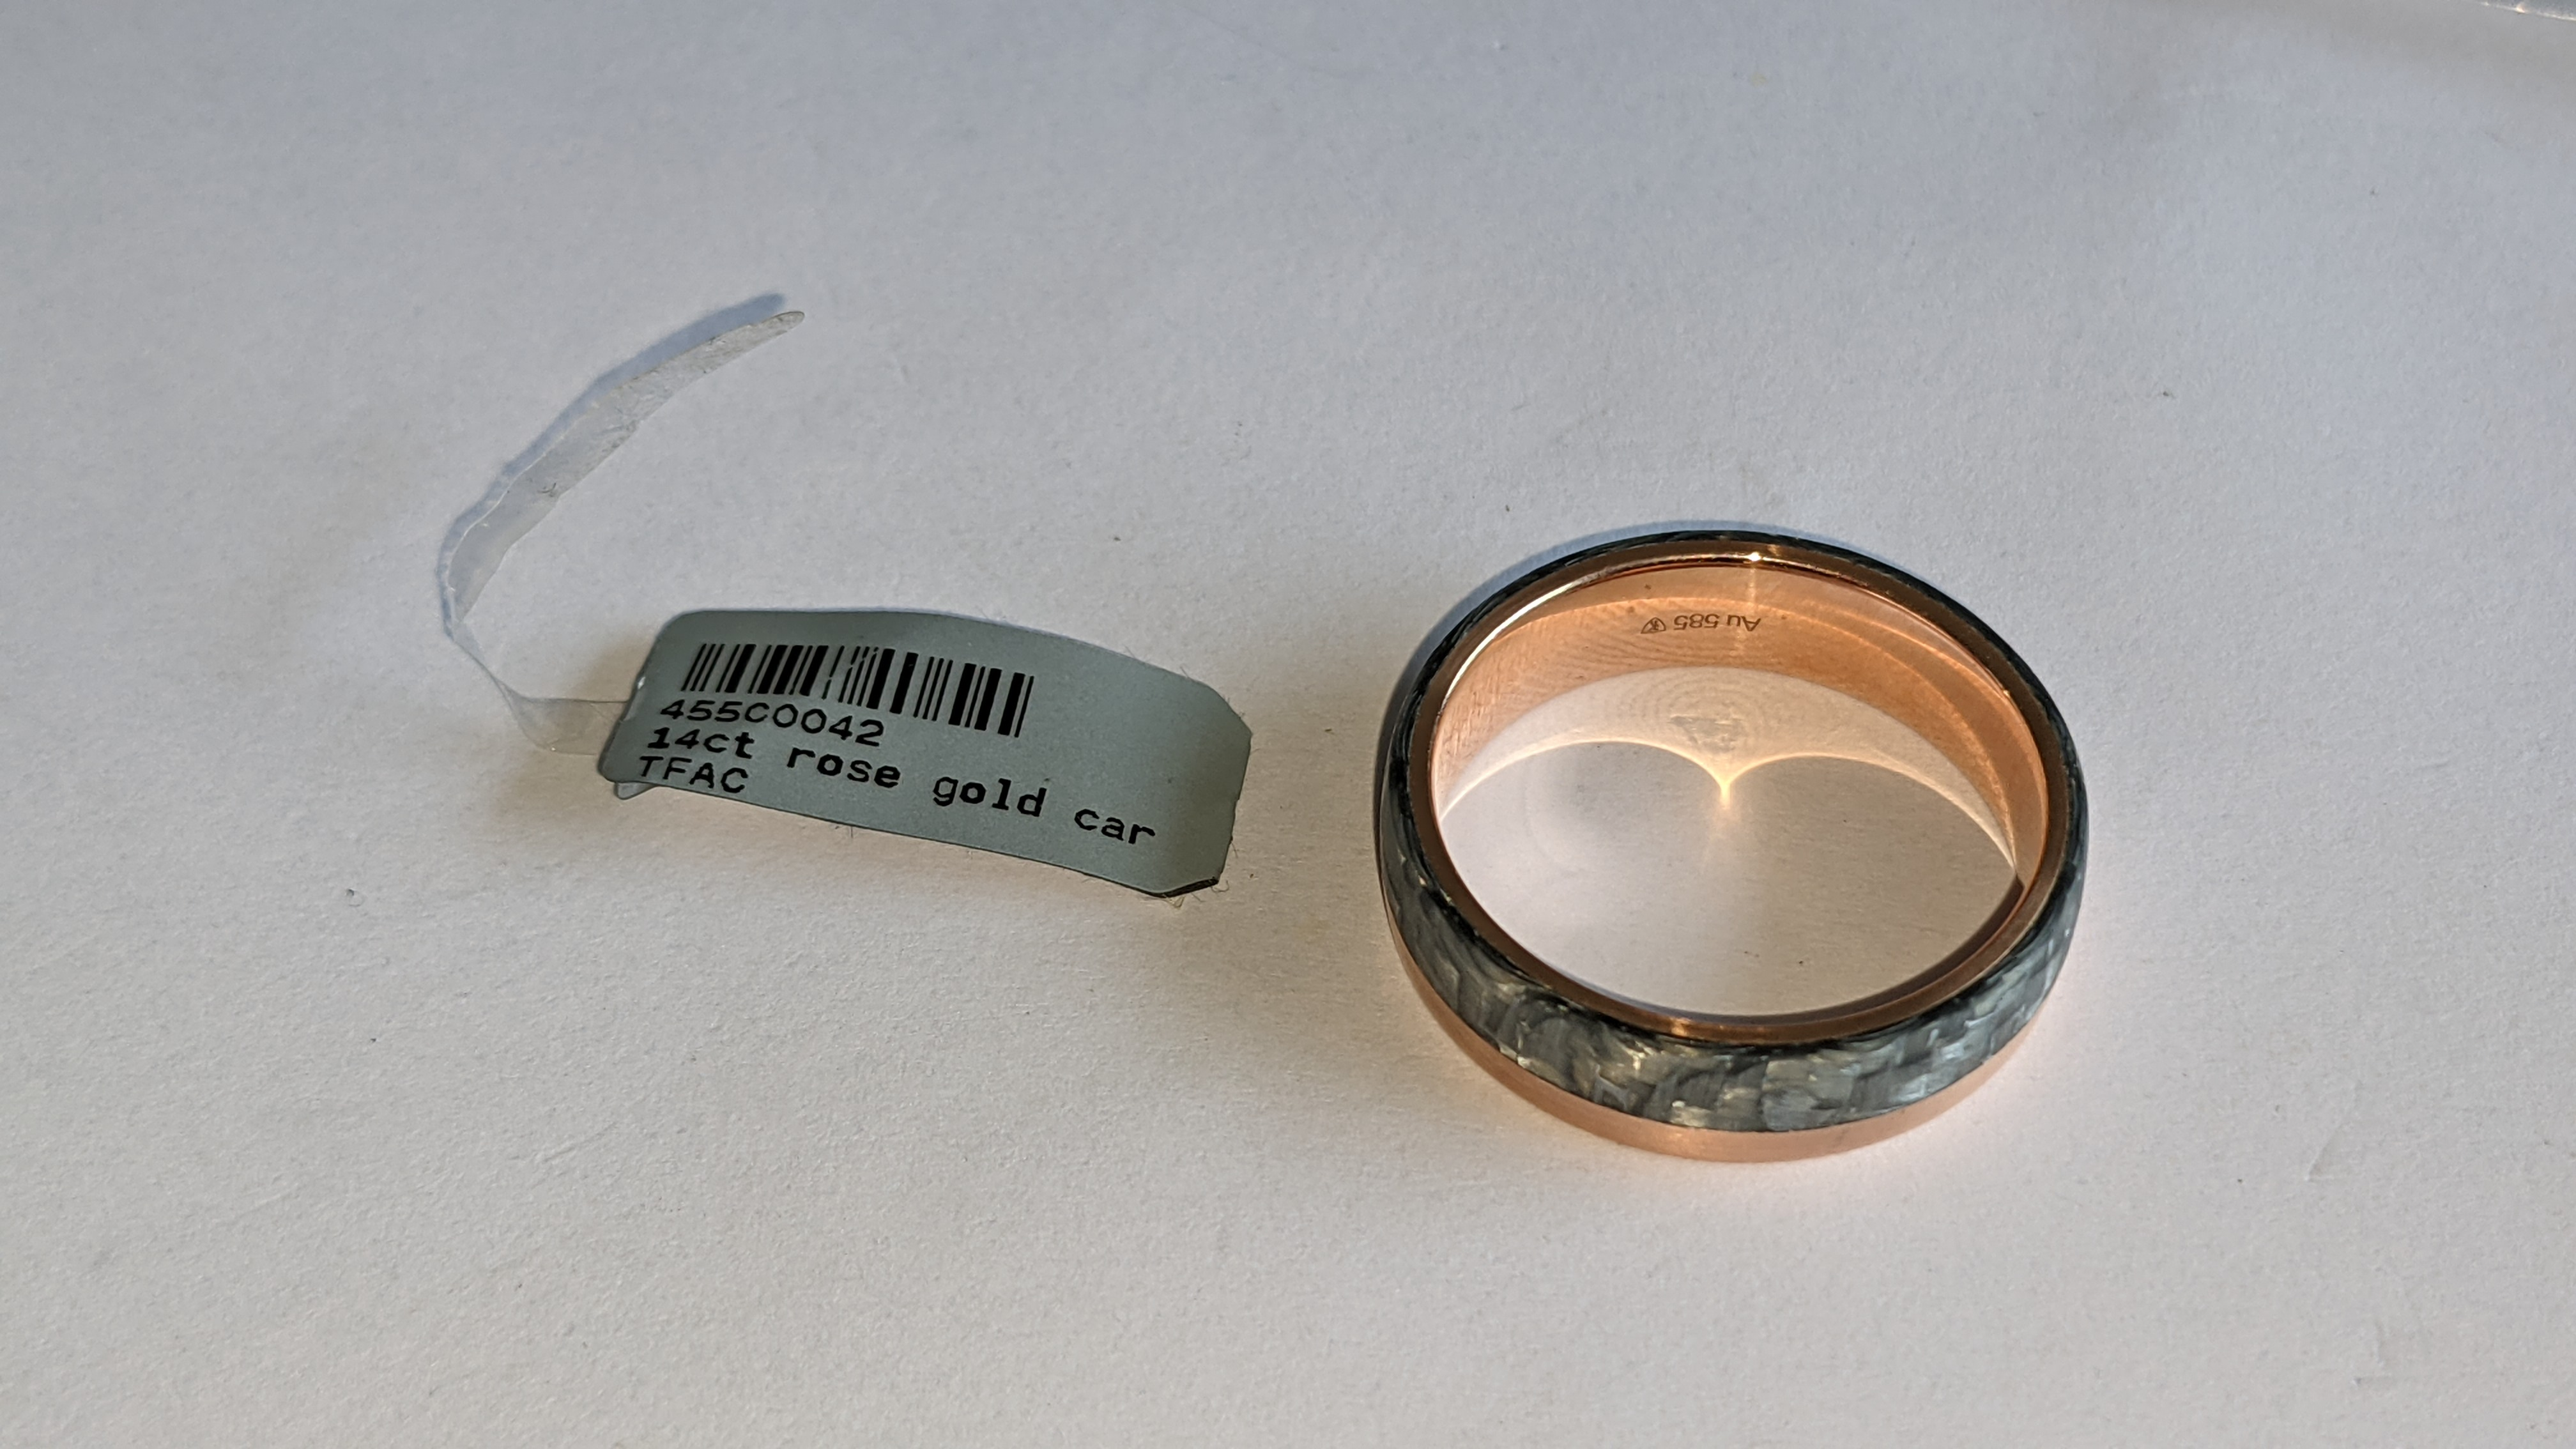 Carbon & 14ct rose gold ring RRP £705 - Image 10 of 13